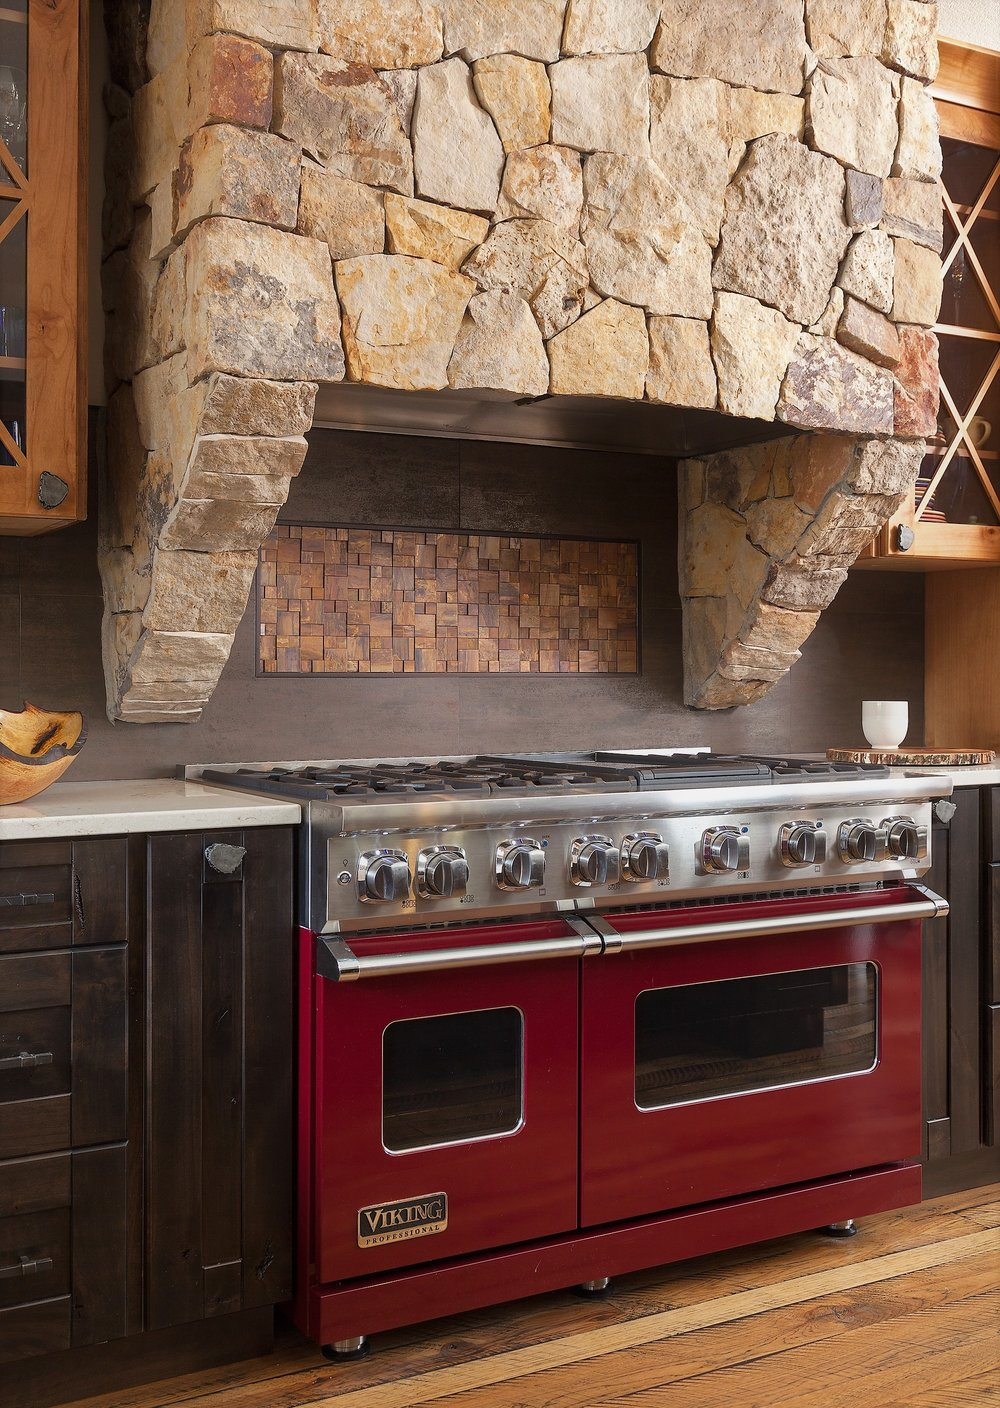 Kitchen Remodel - Bring your dream kitchen to life with kitchen remodeling services.